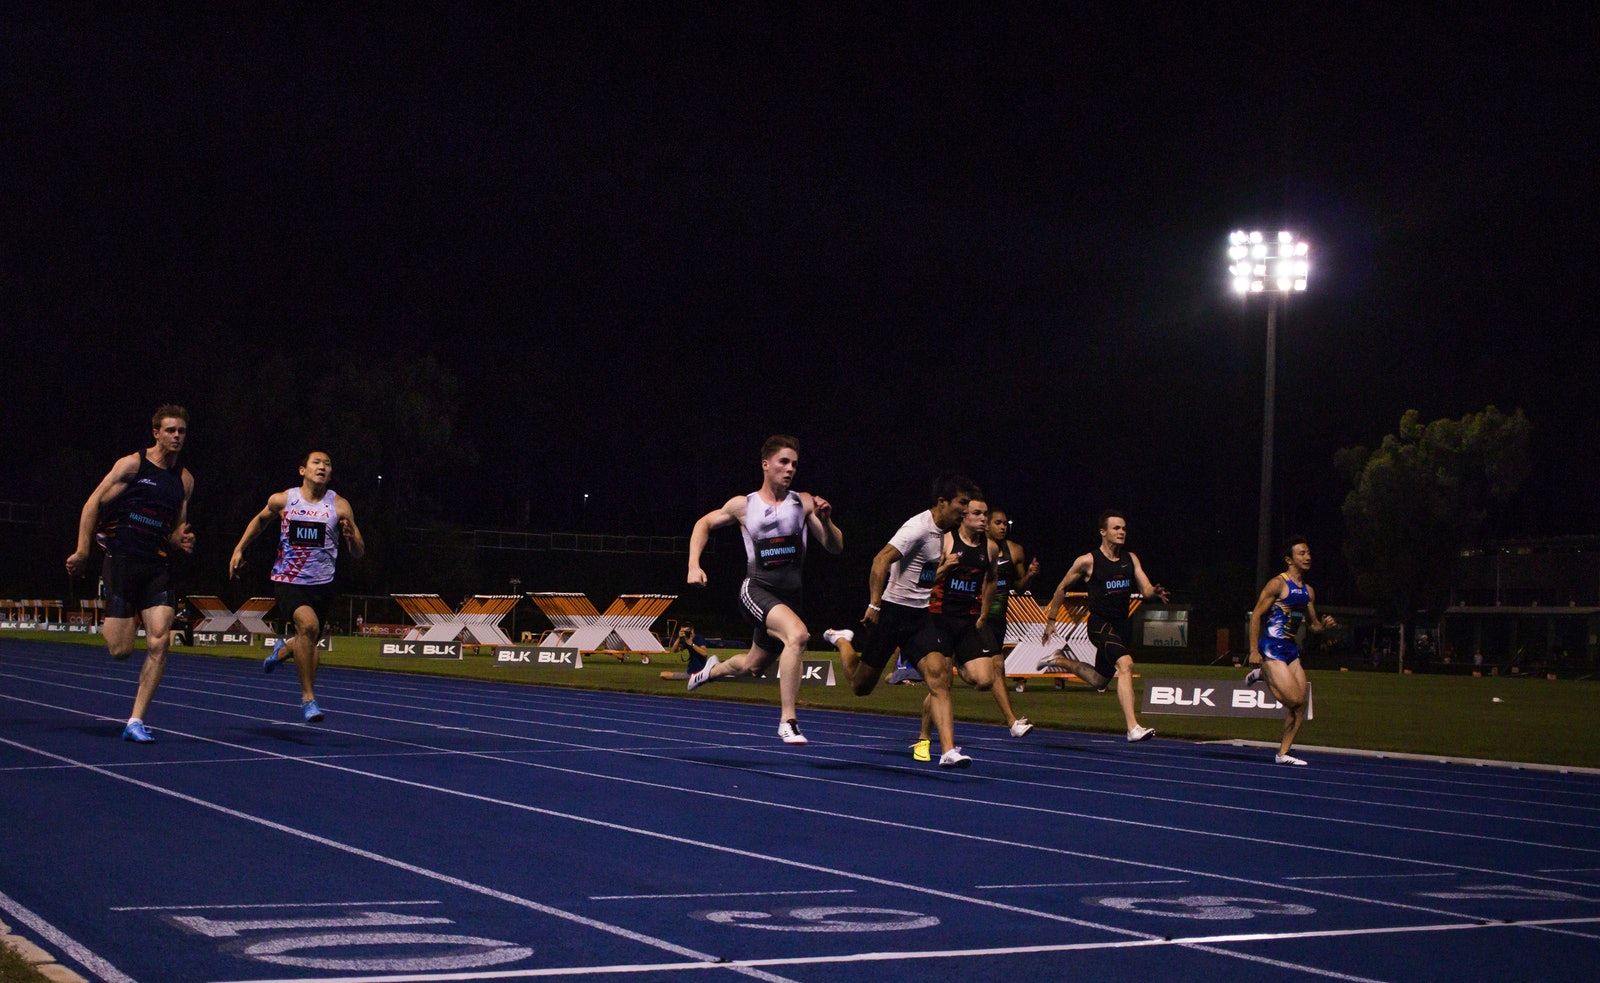 Browning breaks through - In a close 100m, Japan's Yoshihide Kiryu beat 21-year-old Australian Rohan Browning in a photofinish. With a time of 10.08 seconds...